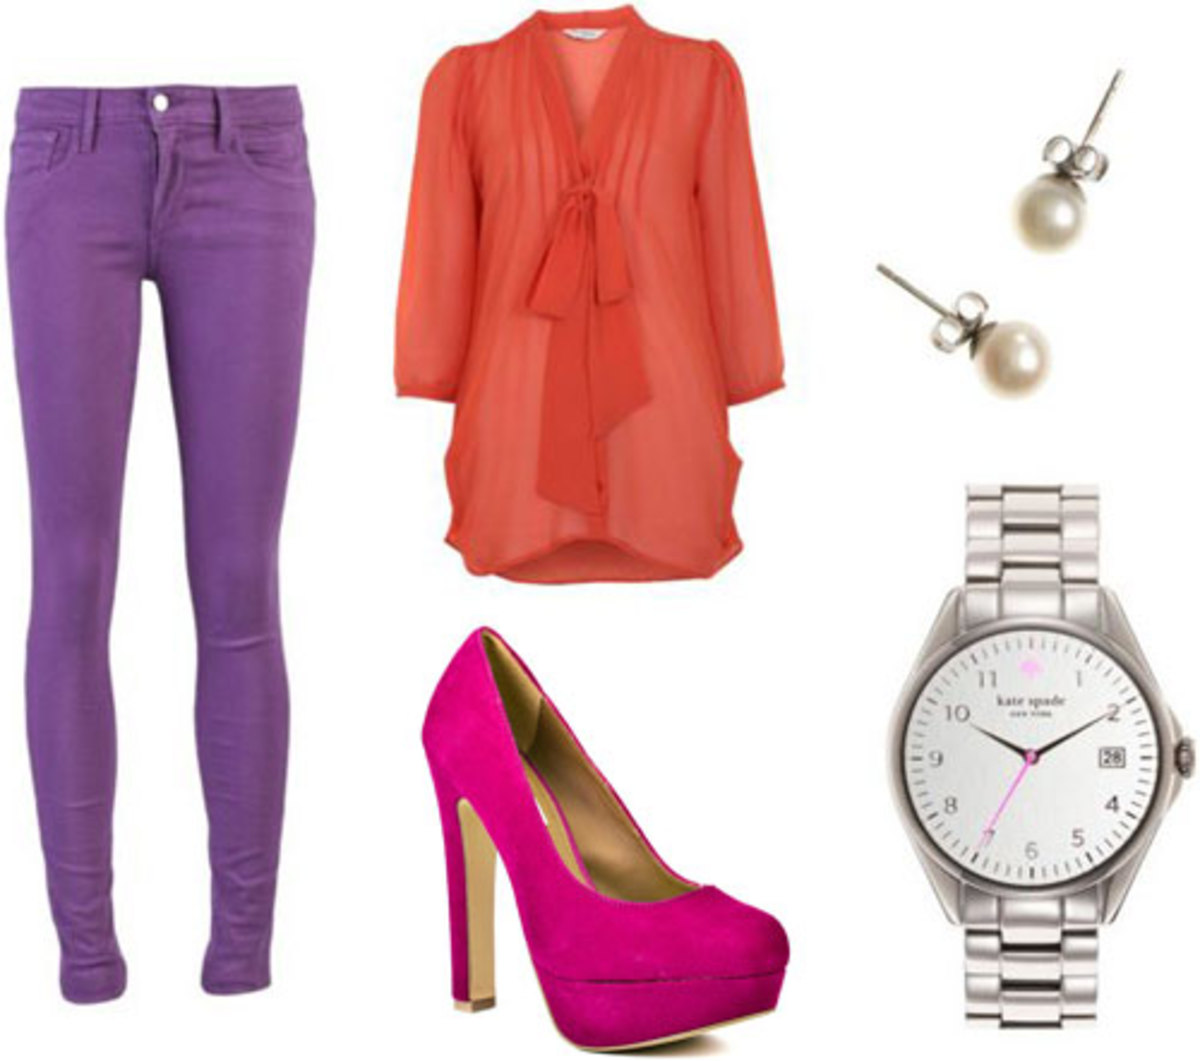 purple-royal-skinny-jeans-orange-top-blouse-bow-watch-magenta-shoe-pumps-studs-pearl-howtowear-fashion-style-outfit-spring-summer-lunch.jpg